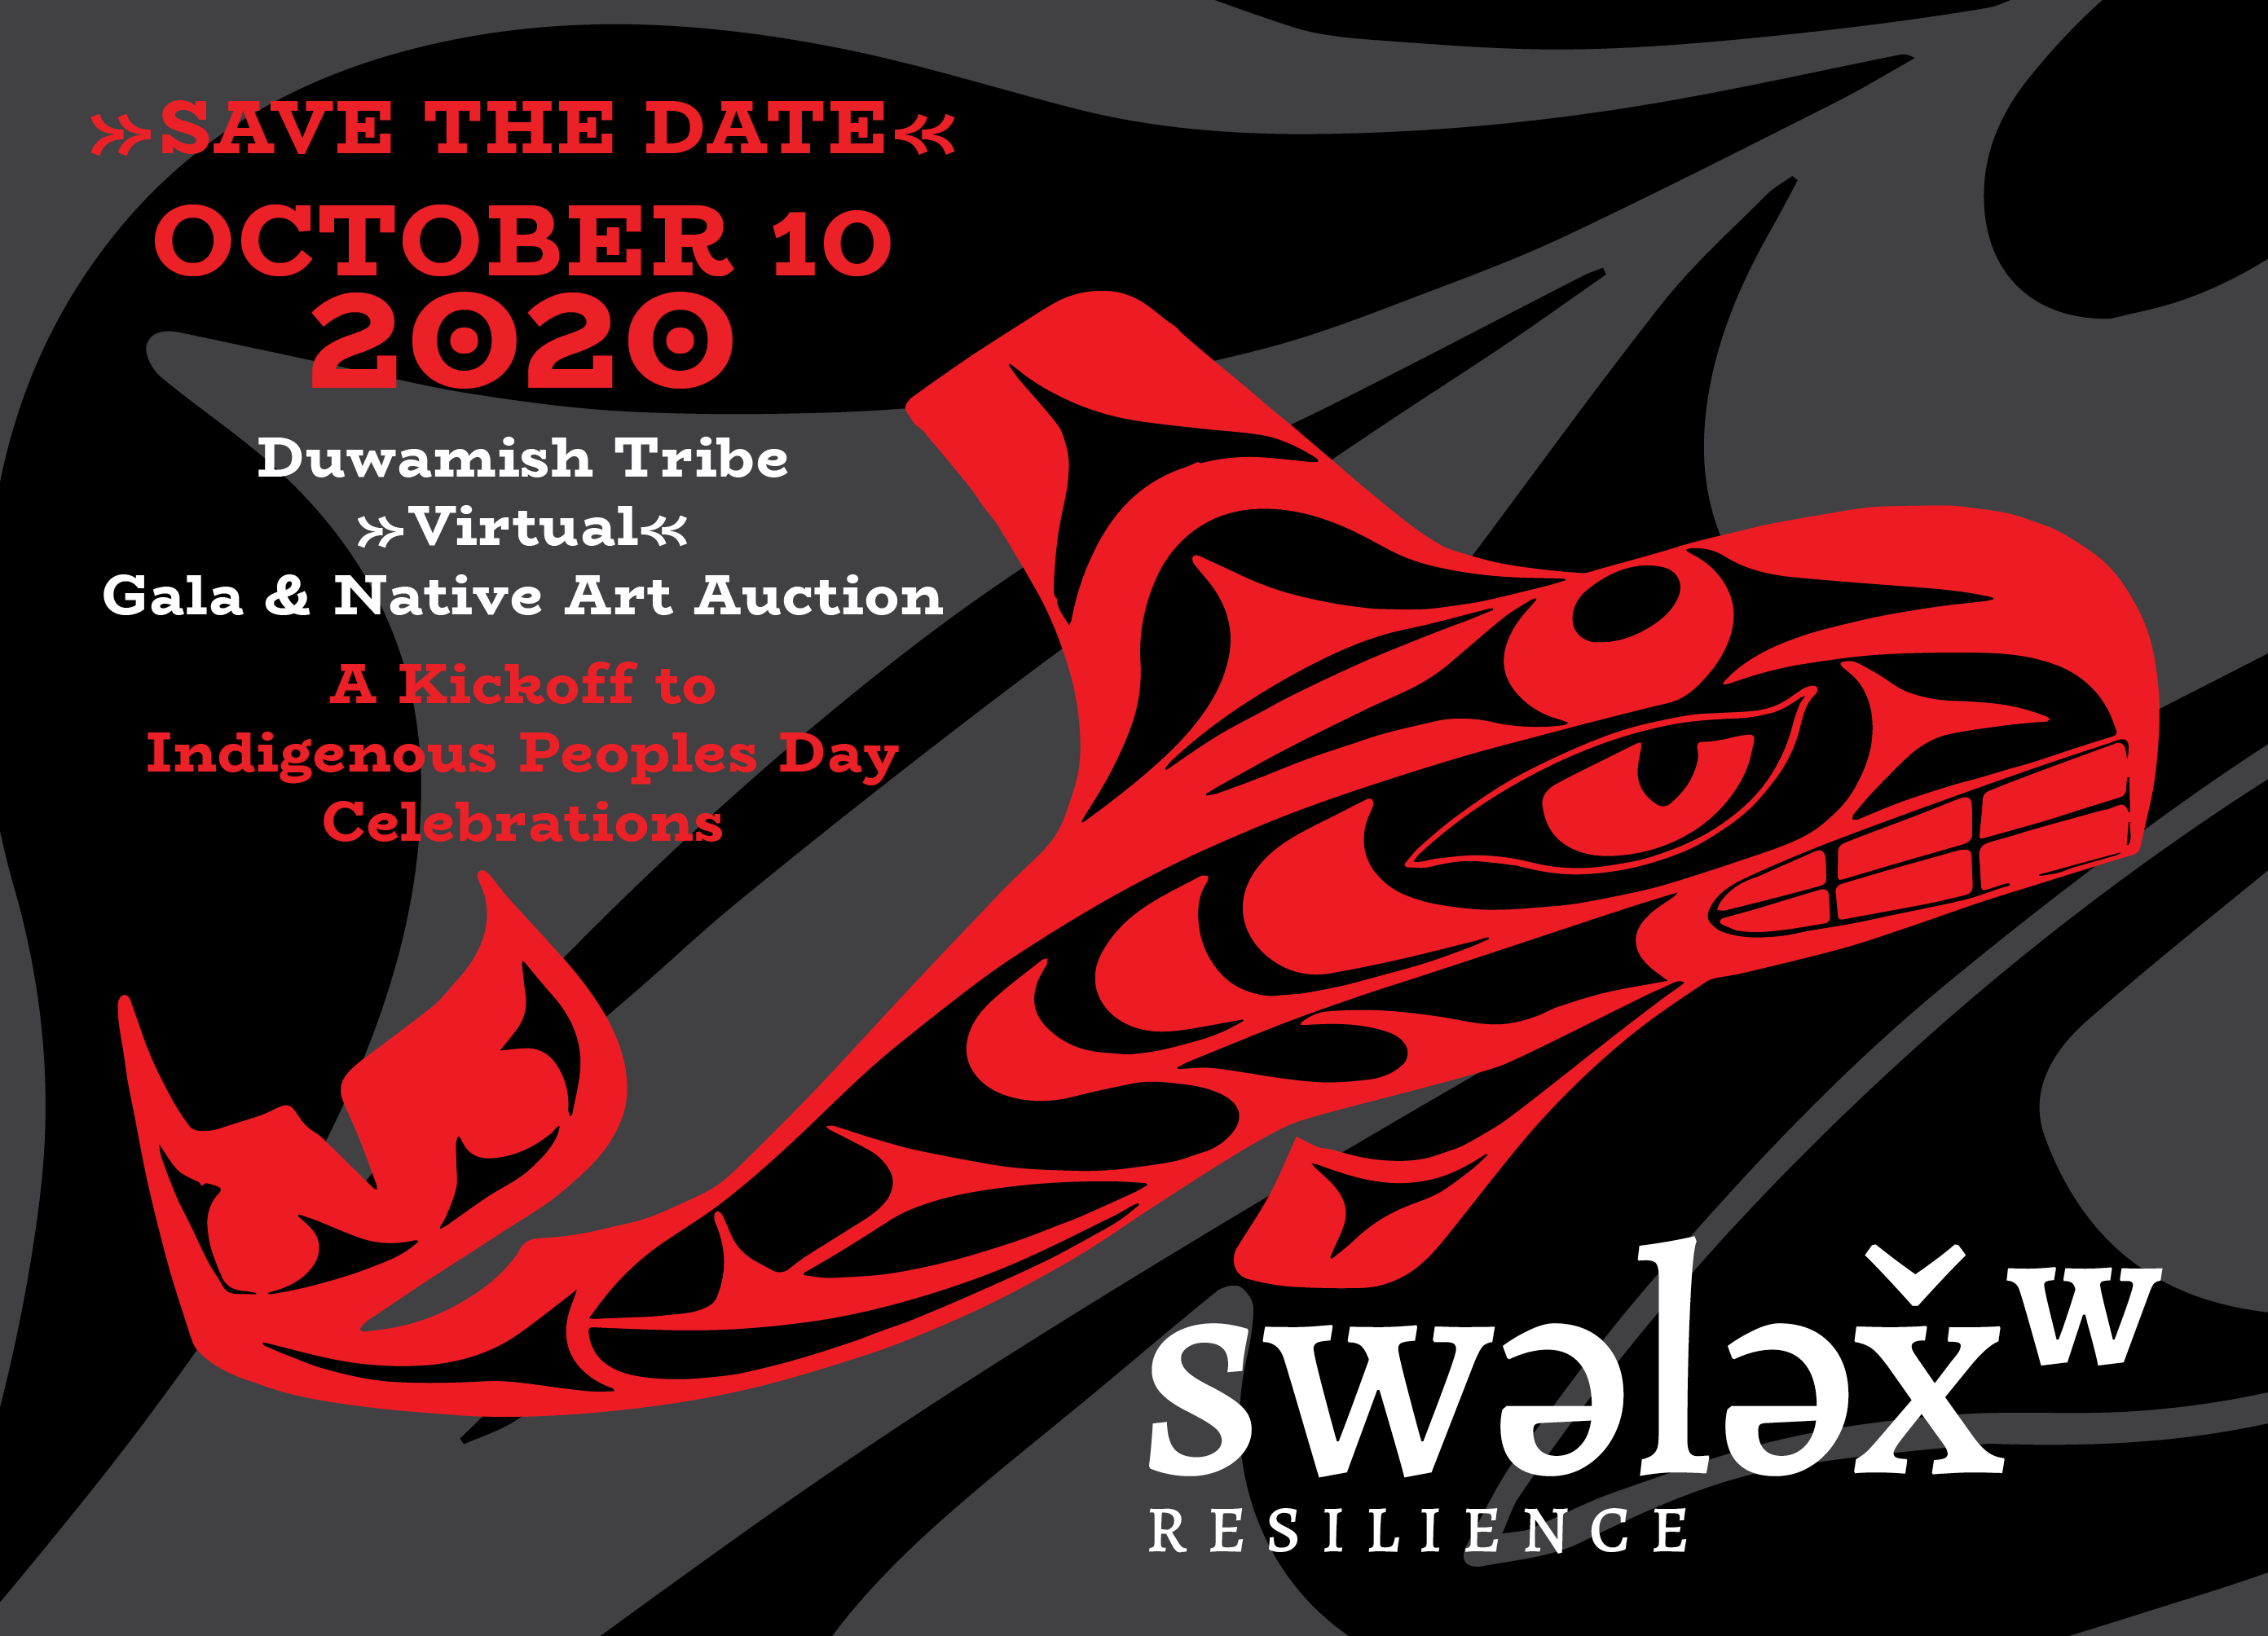 Save the Date invitation for the 2020 Duwamish Gala